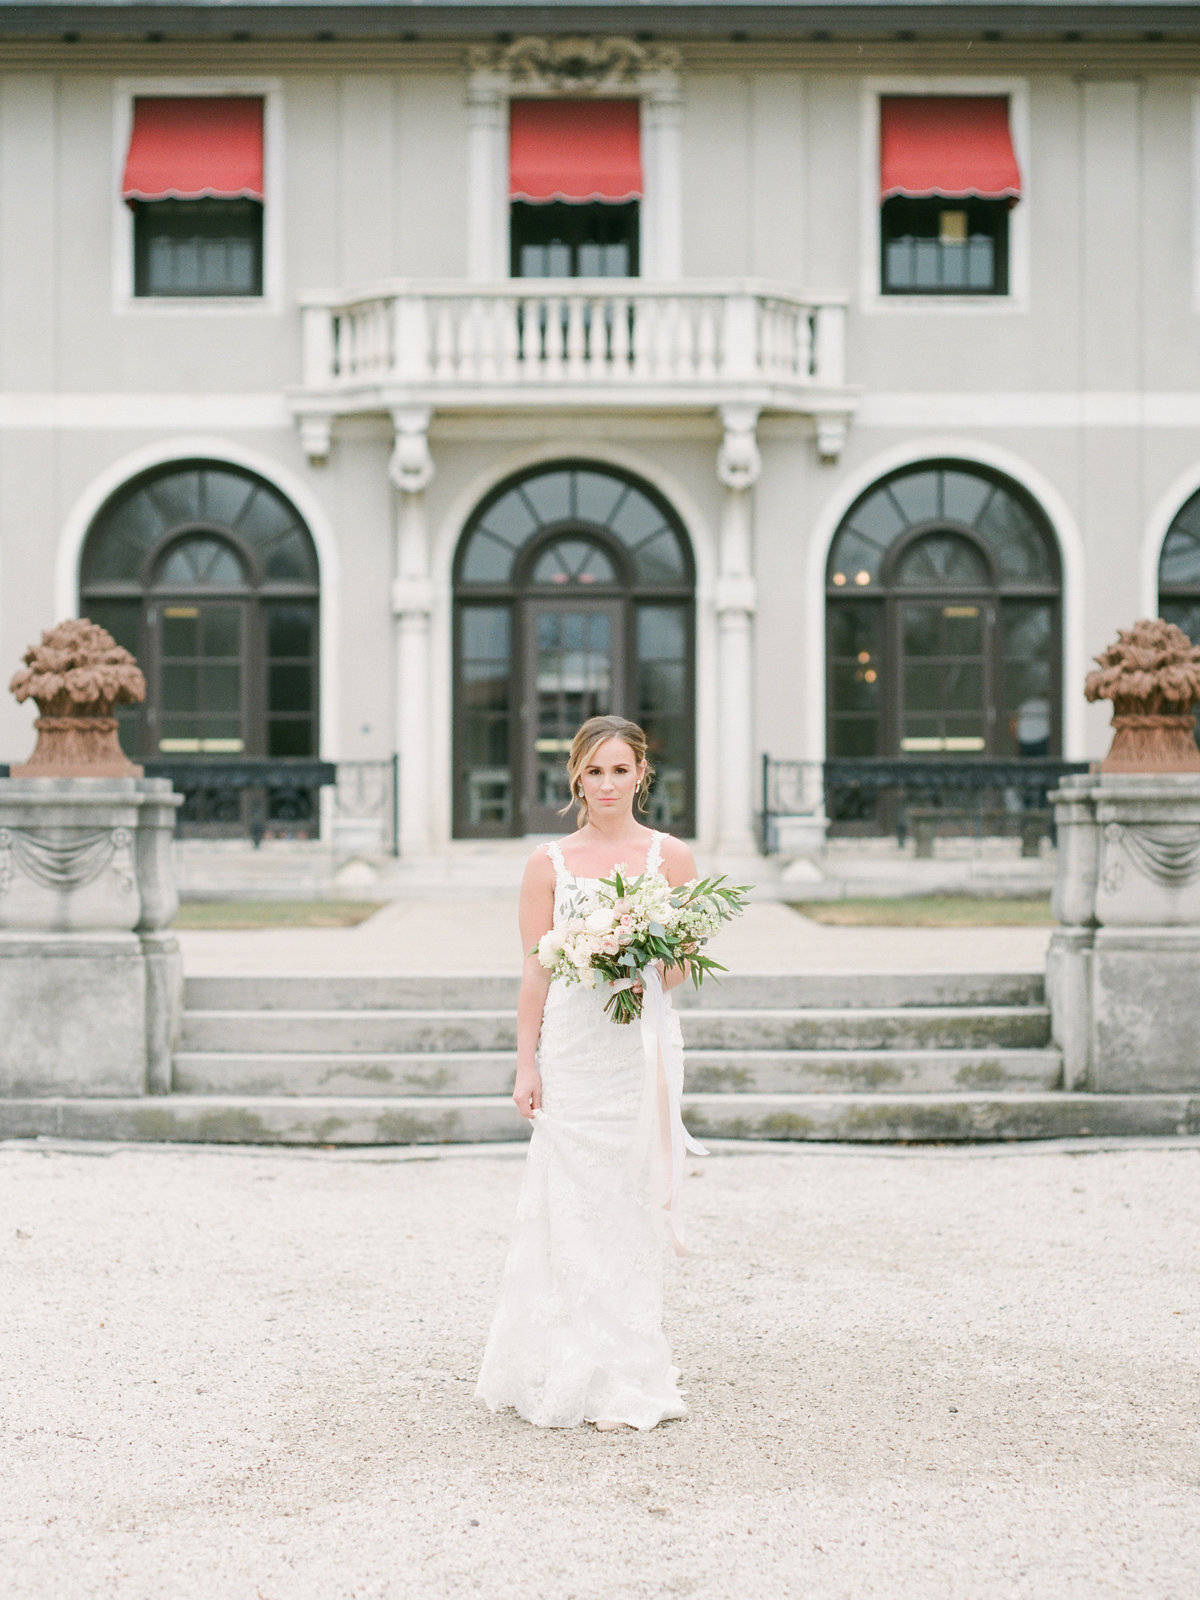 bride walking in front of mansion